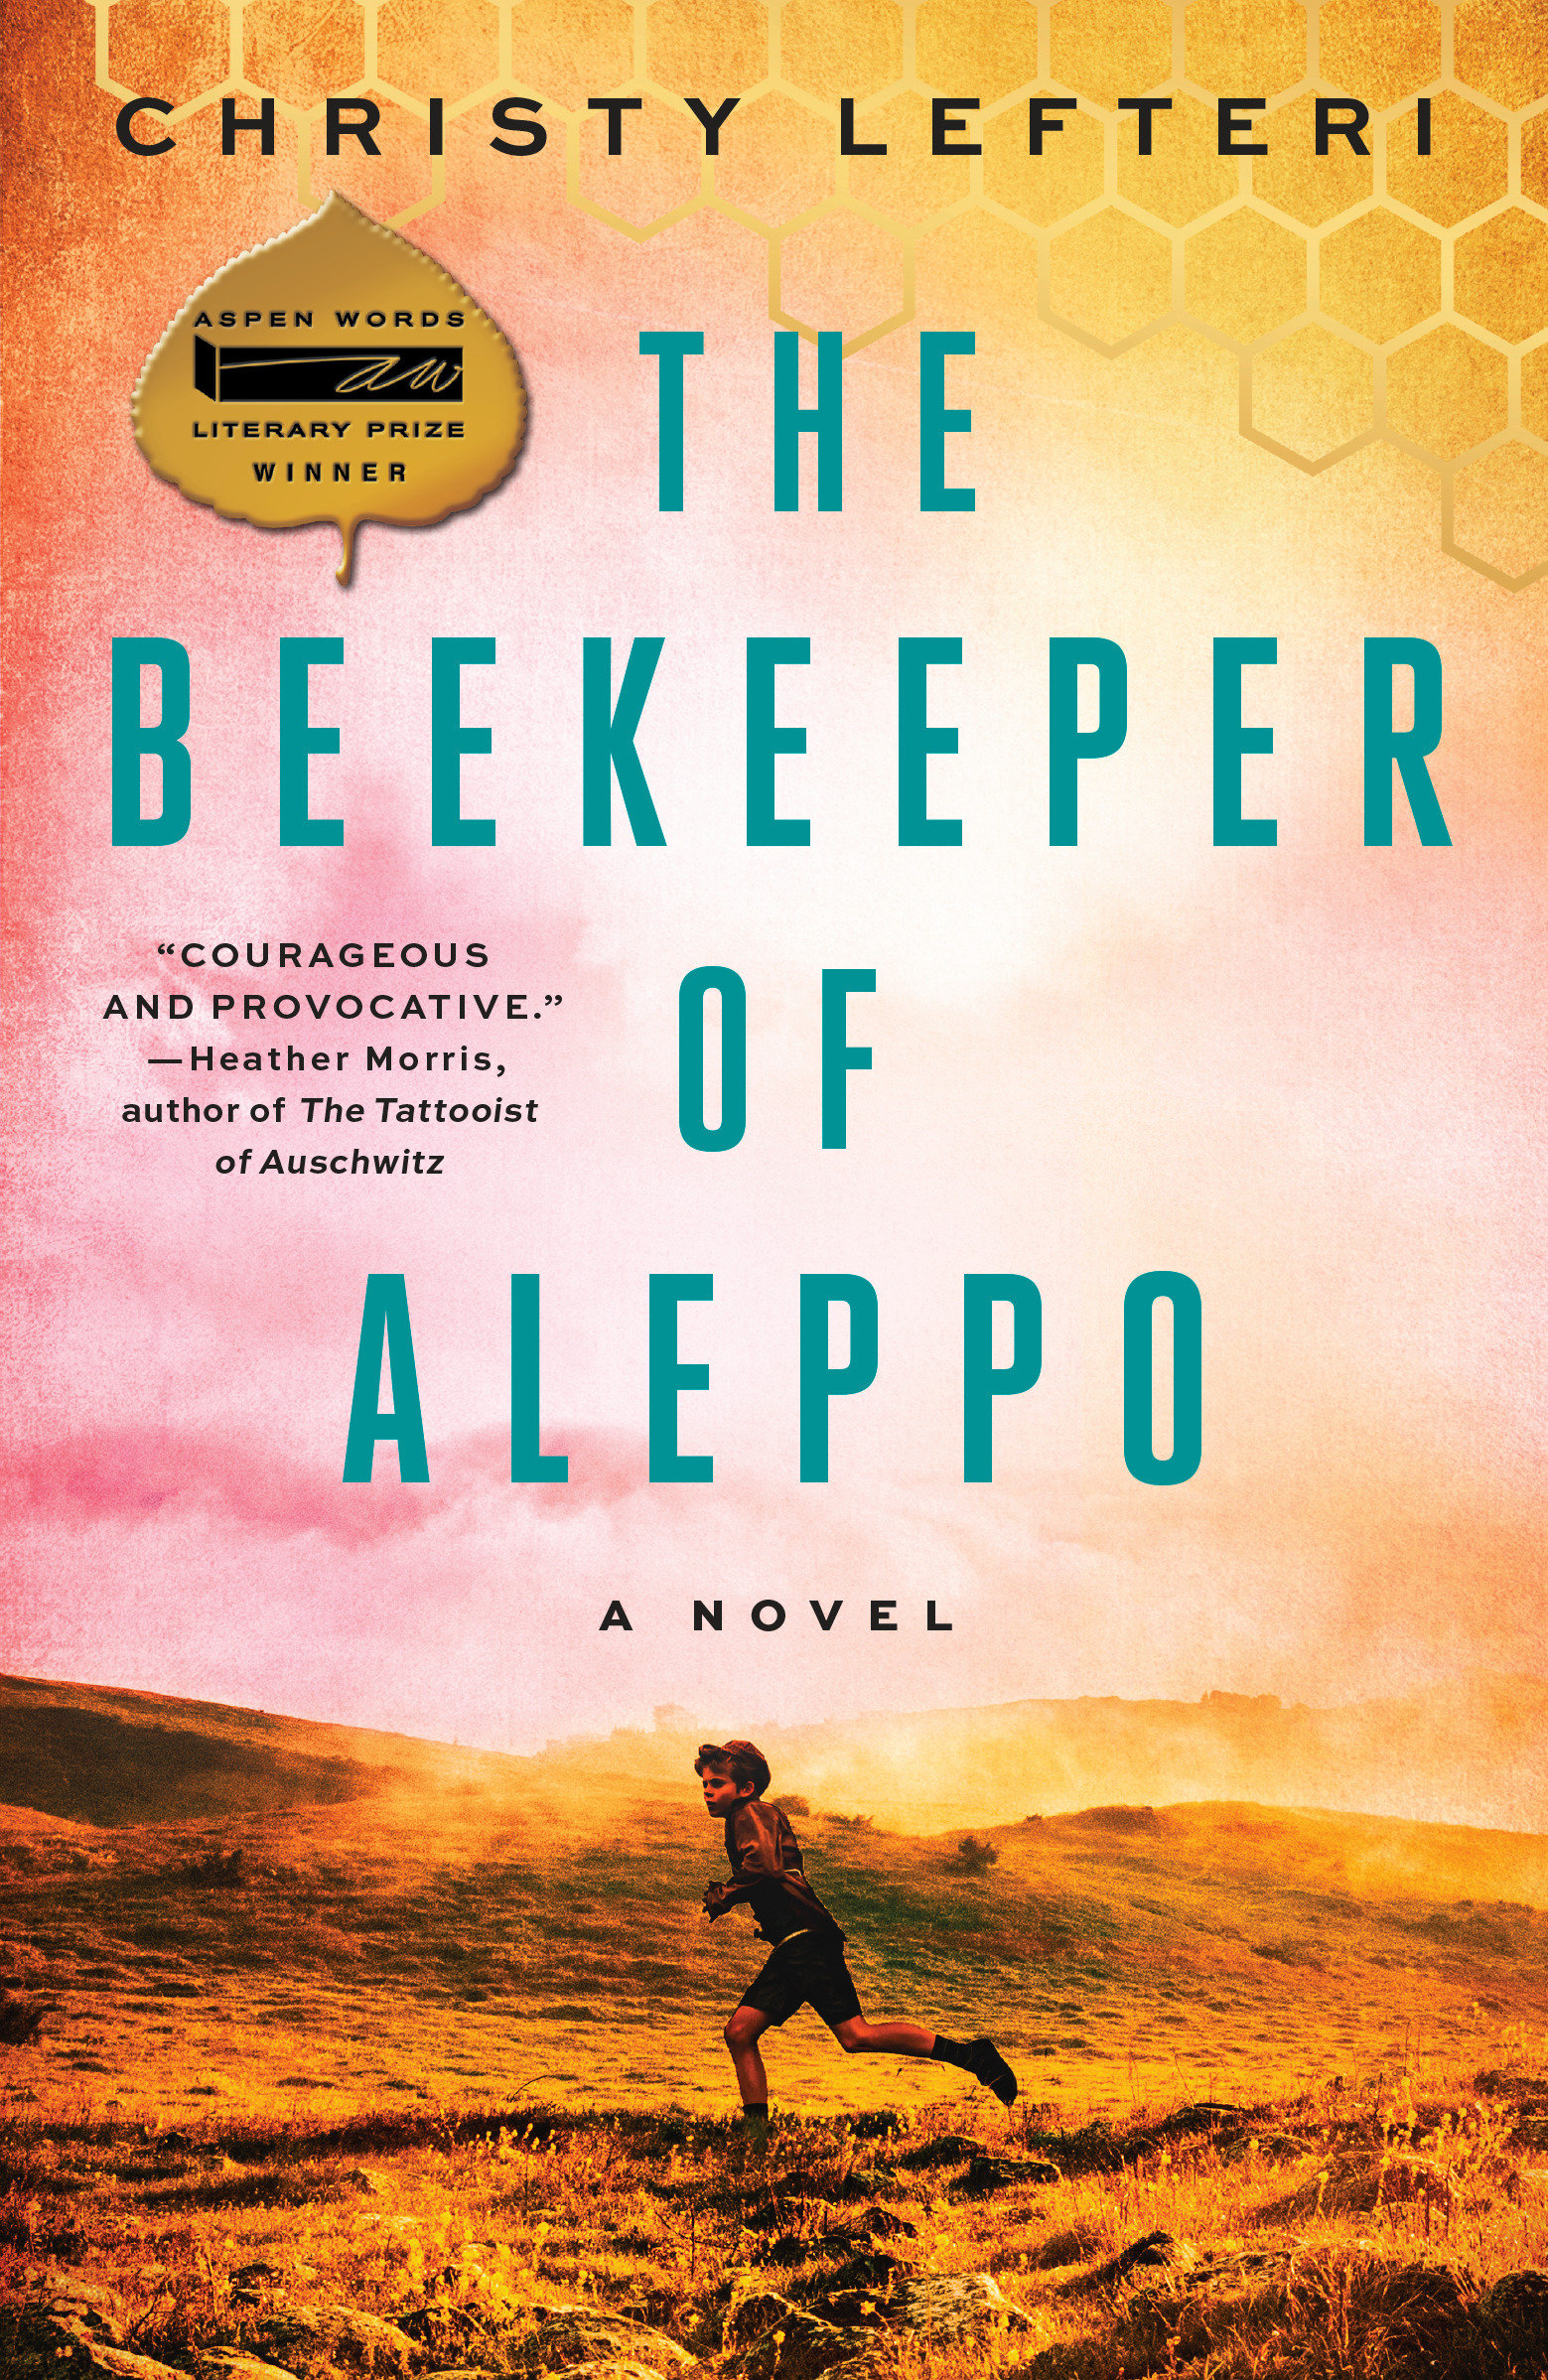 The Beekeeper of Aleppo A Novel